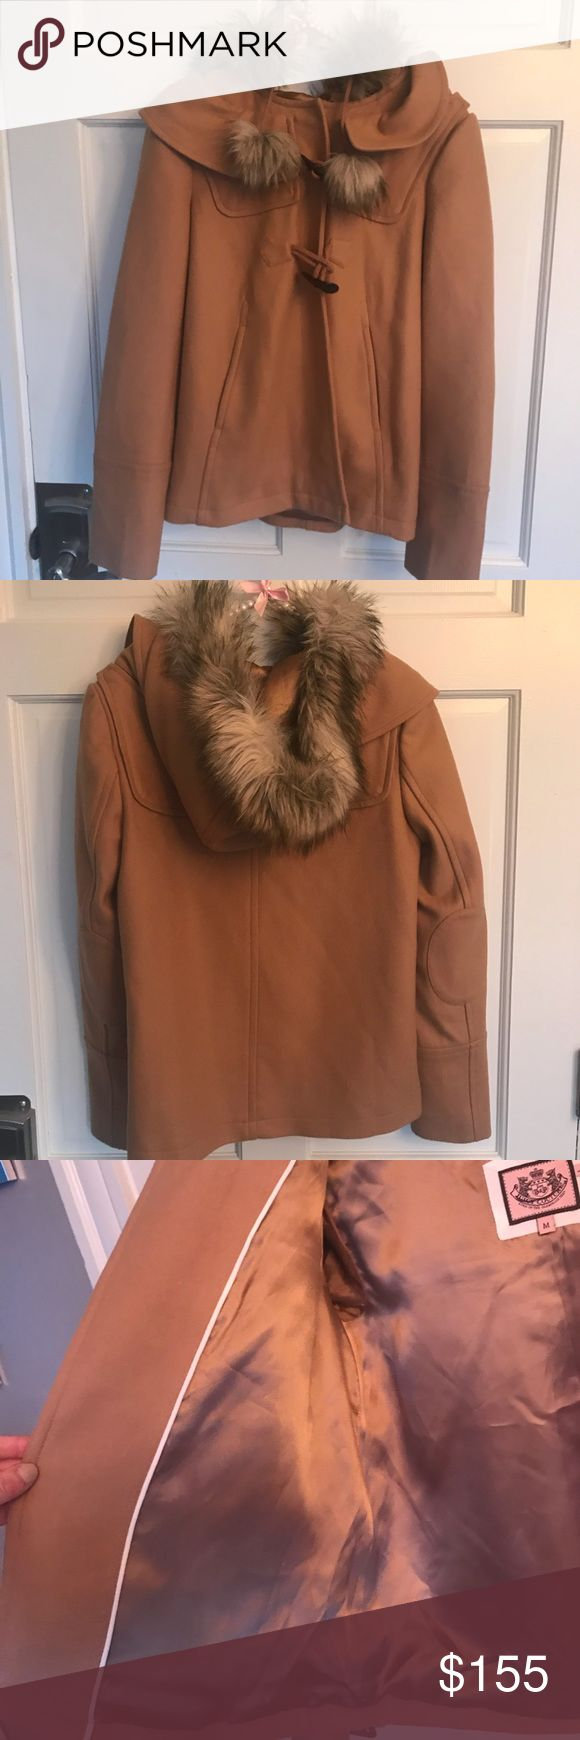 SALE*** Juicy Couture Faux Fur Pom Pom P Coat🧥 Gorgeous NWT Brand New W/Out Tags Juicy Couture Size Medium P Coat with faux fur hood and hanging Pom poms. This Coat is SO cute AND warm! Great for the holidays and date nights during the season! Never worn! Used for a trunk show! Comes from smoke free pet free house! Make me an offer! Juicy Couture Jackets & Coats Pea Coats